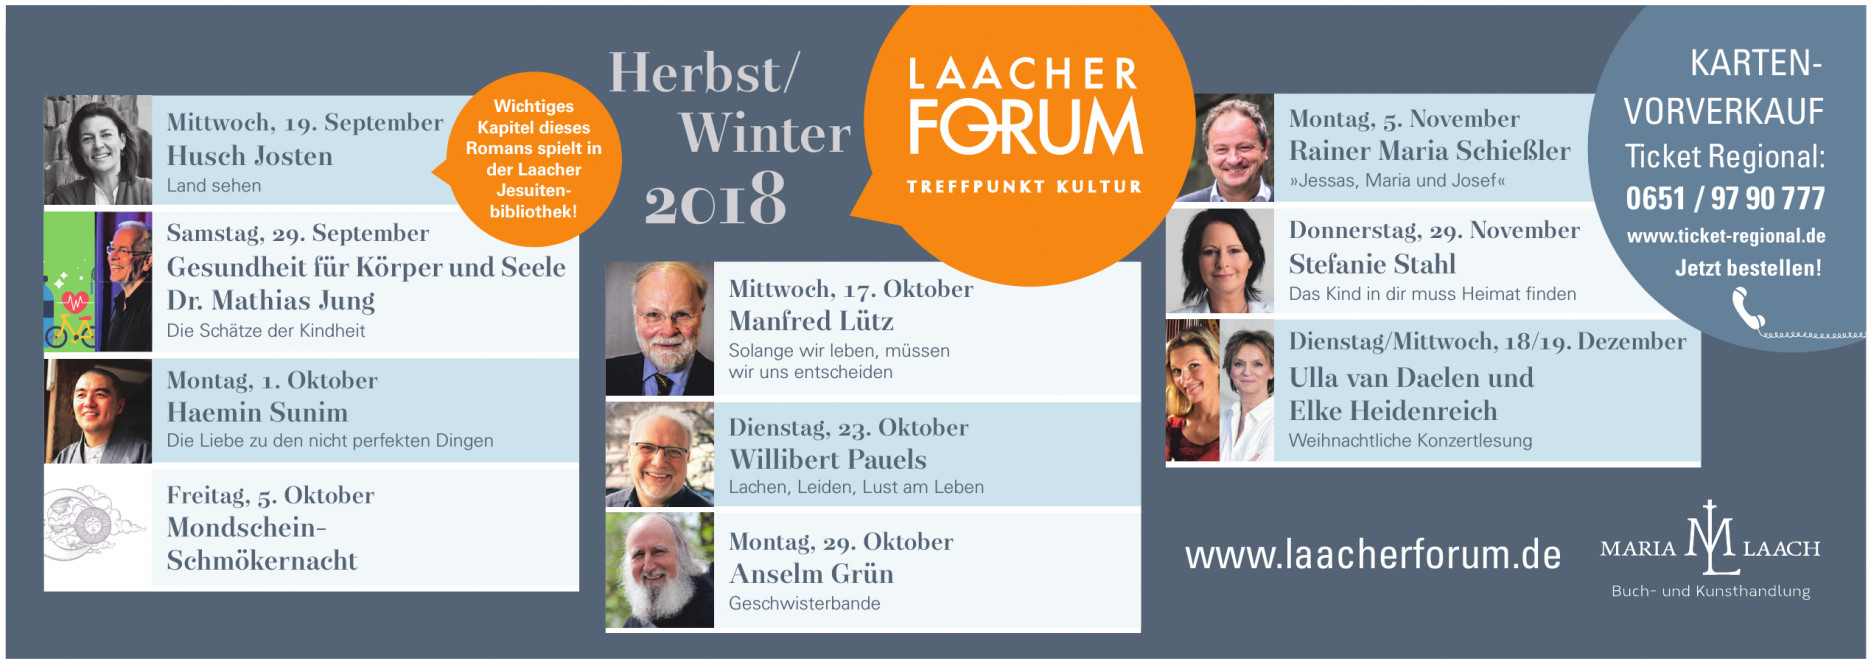 Laacher Forum